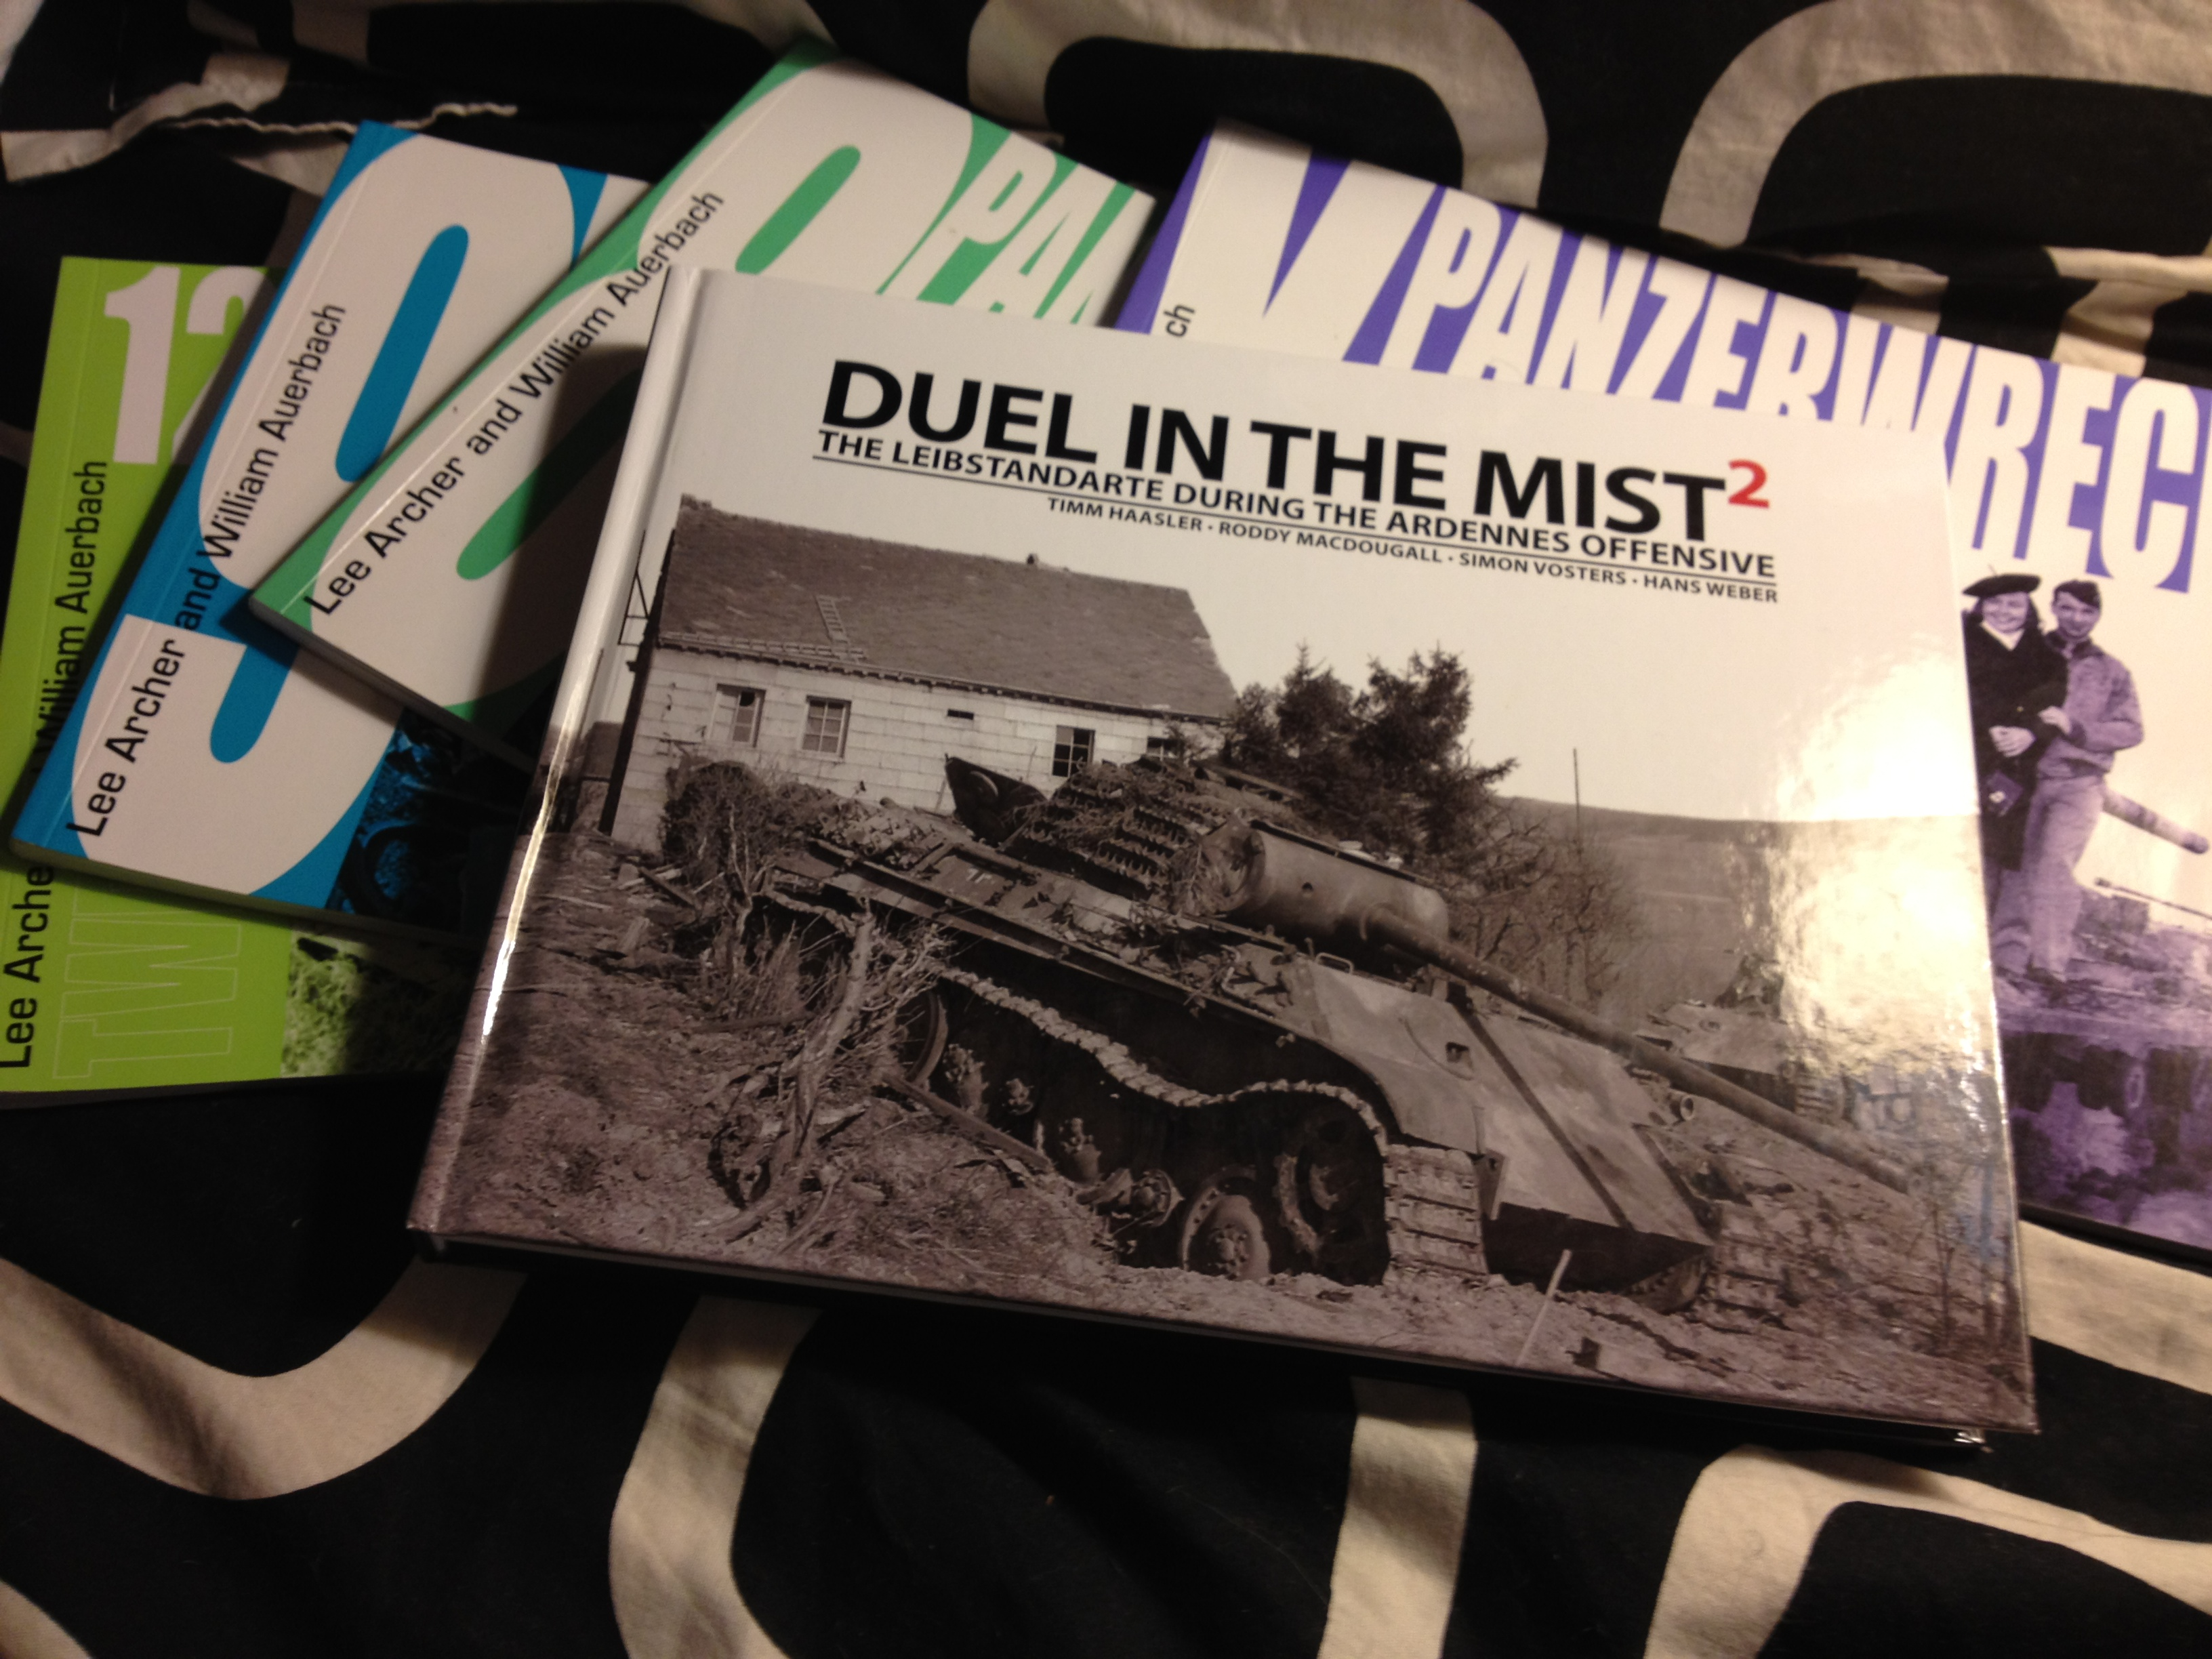 PortraitsofWar Book Review #1: Panzerwrecks' Duel in the